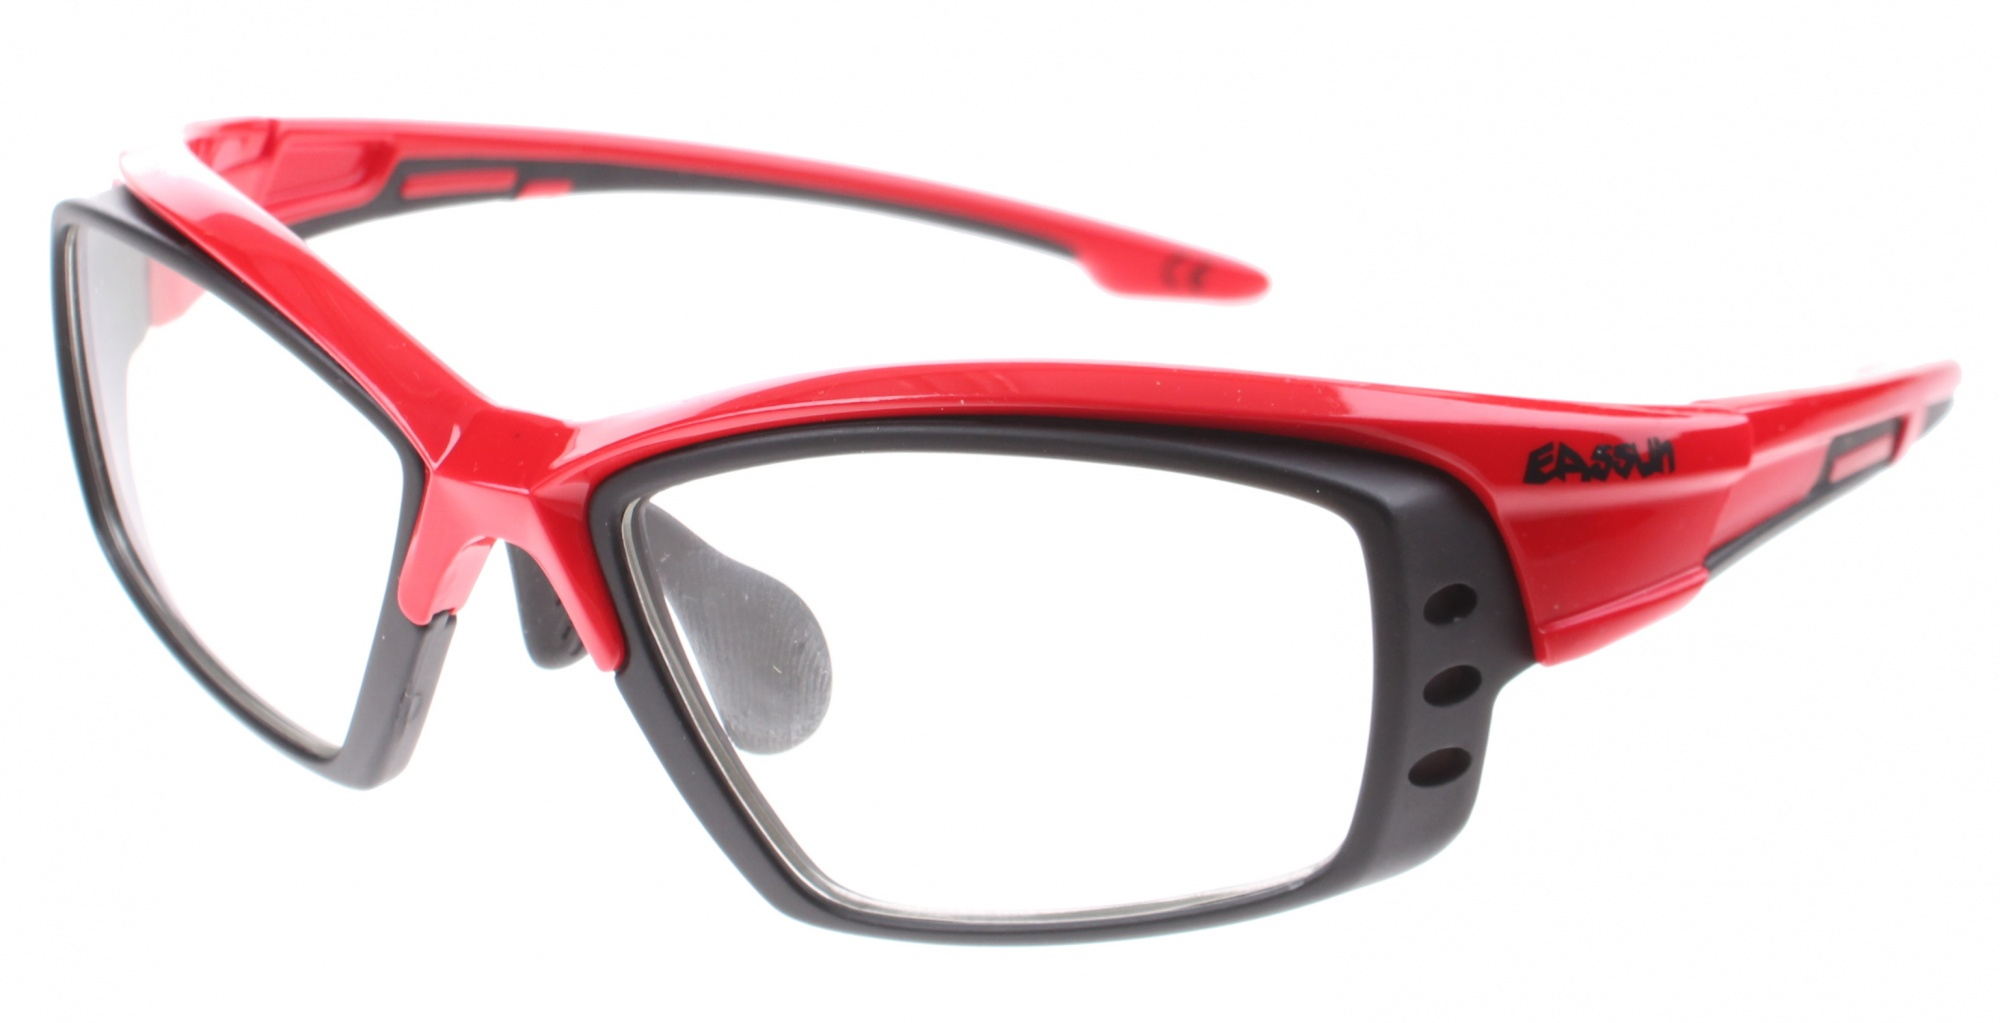 2ab549bbf5 Eassun bicycle glasses Pro RX Montura red   black clear glass. Enlarge